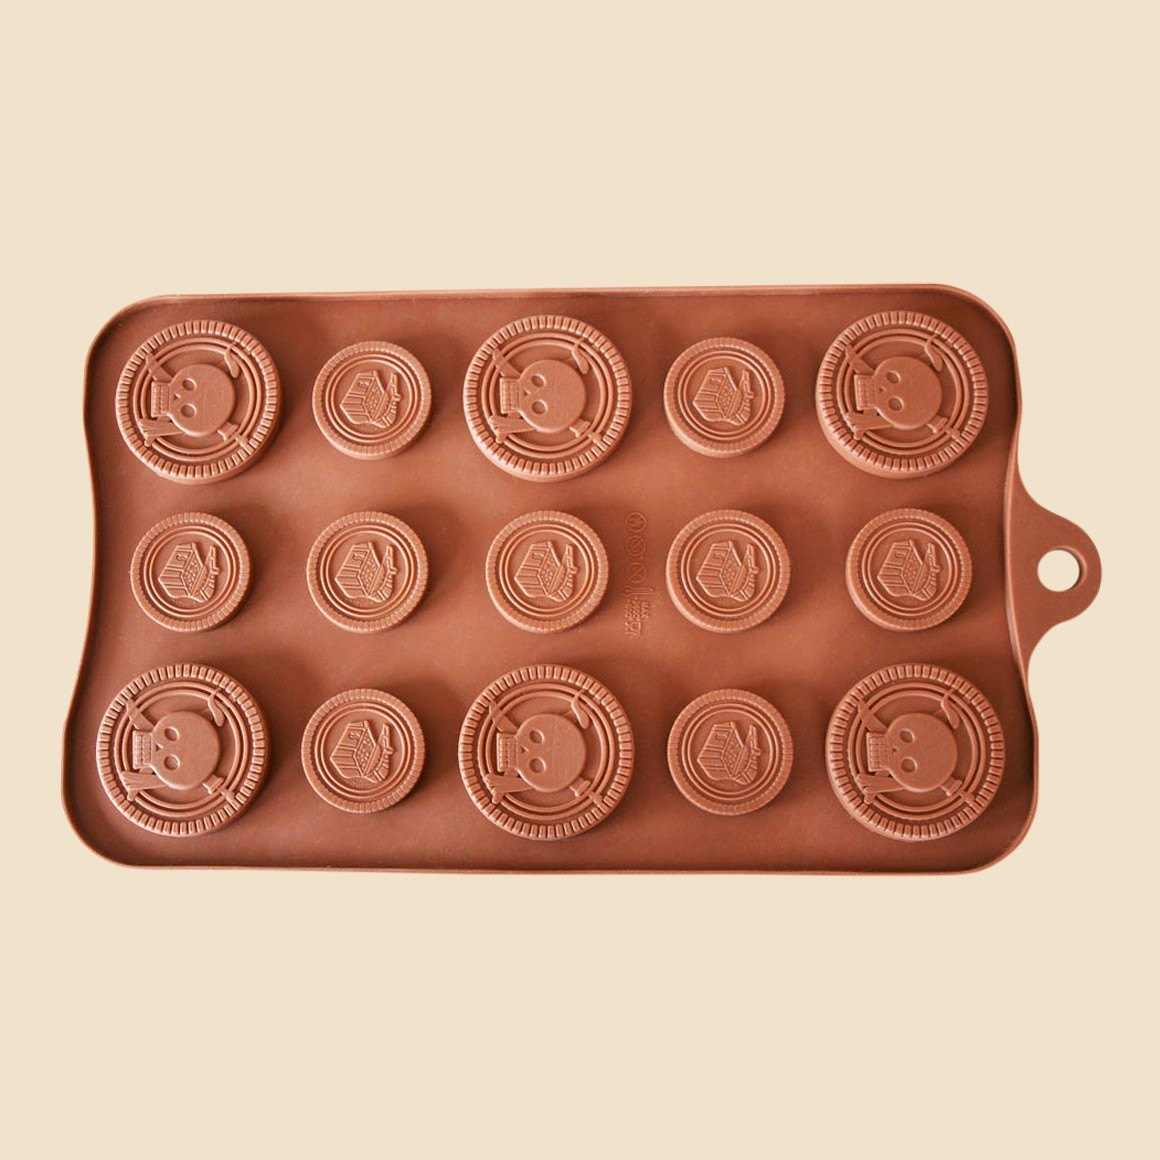 Pirate Coins Chocolate Mould